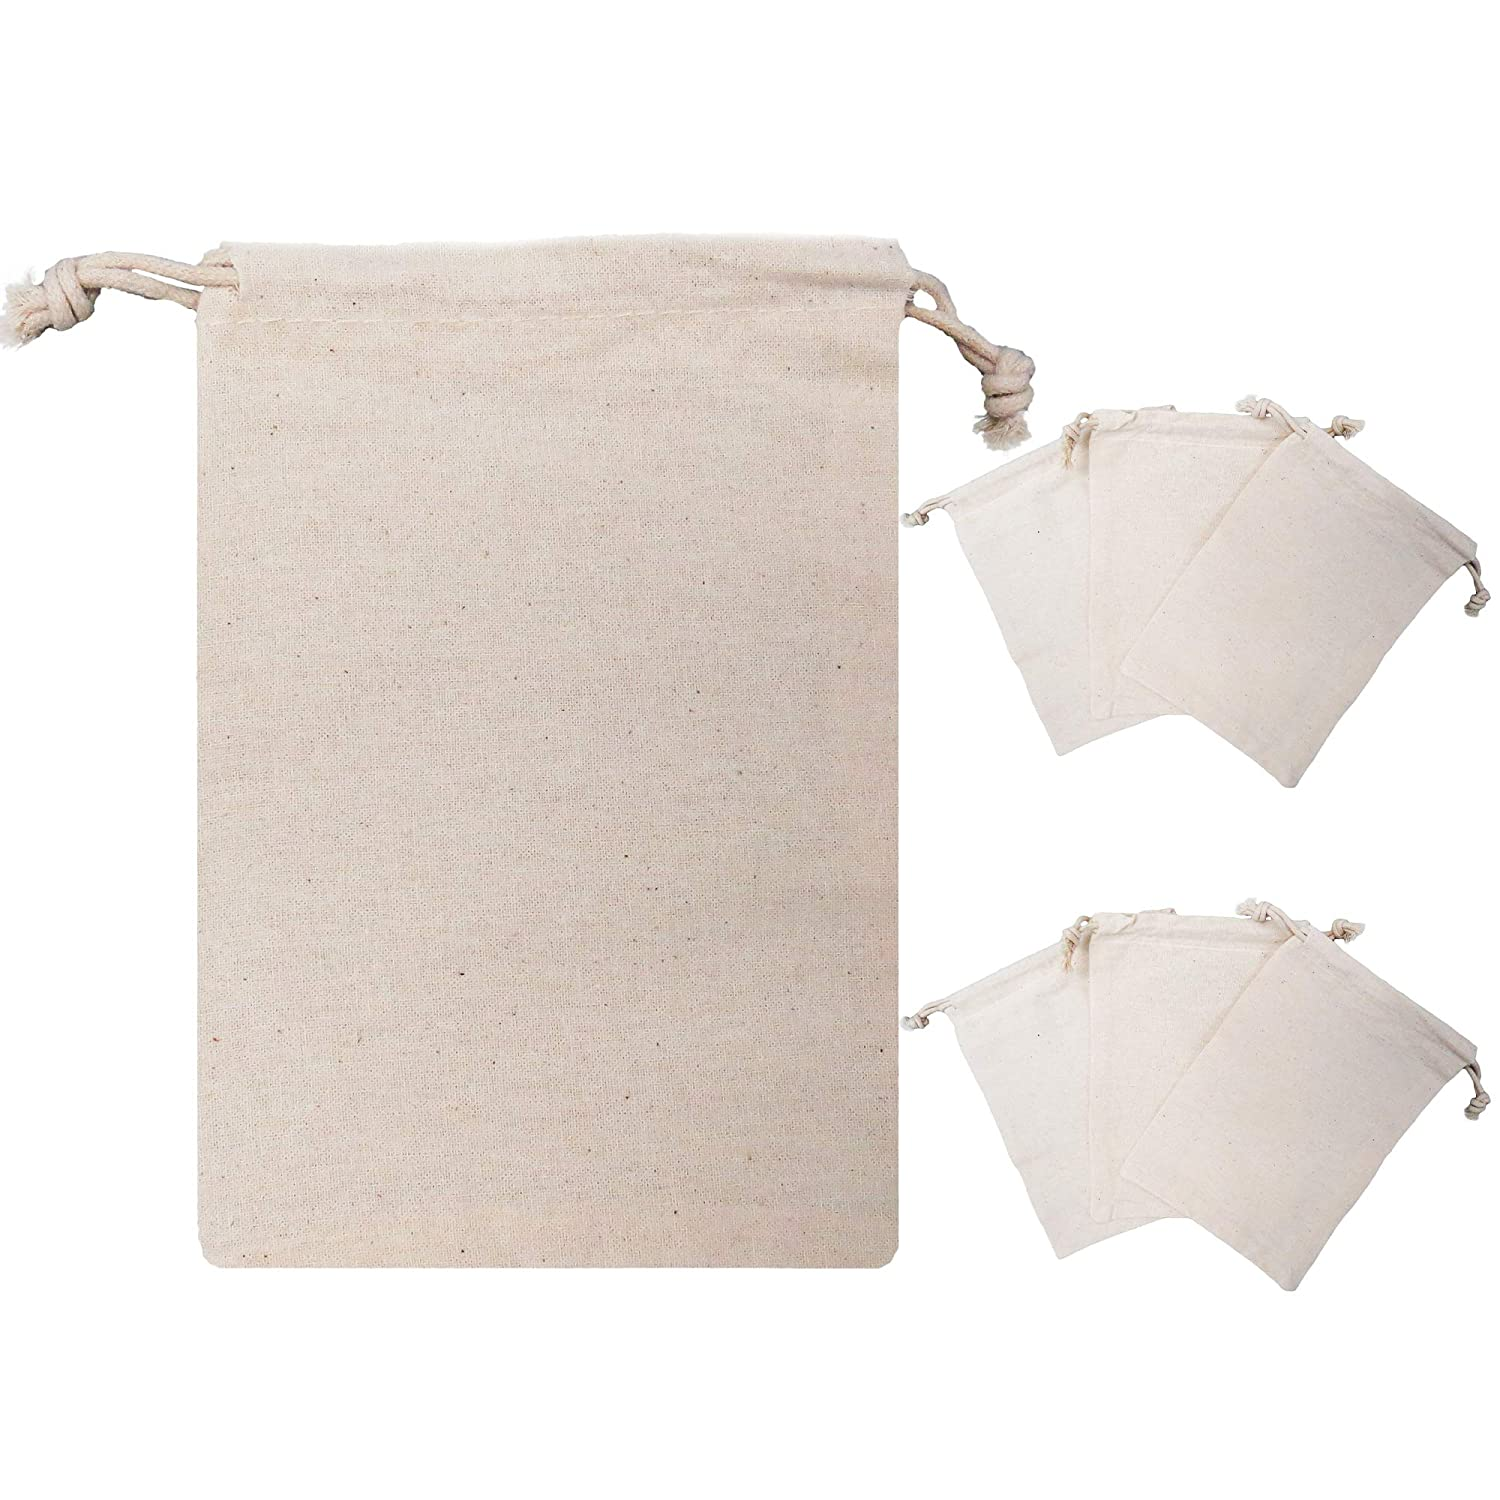 !RAKRISA 25 Pcs 3x4 Inch Muslin Double Drawstring Bags | Light Tan Muslin Bags for Party Favors, Baked Treats & Gifts 81C42BUR01vL